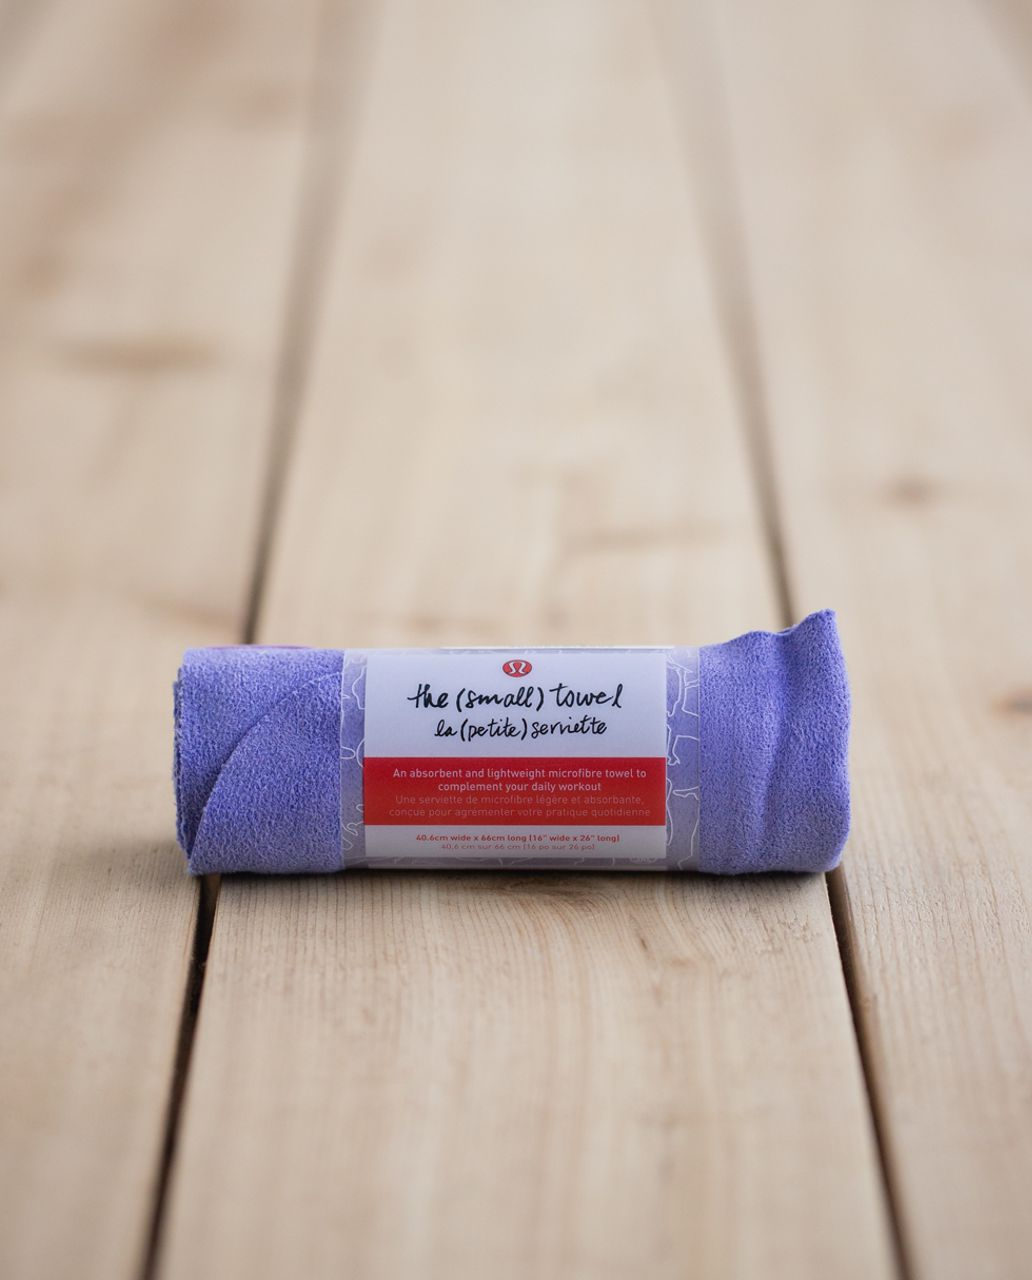 Lululemon The (Small) Towel - Lullaby